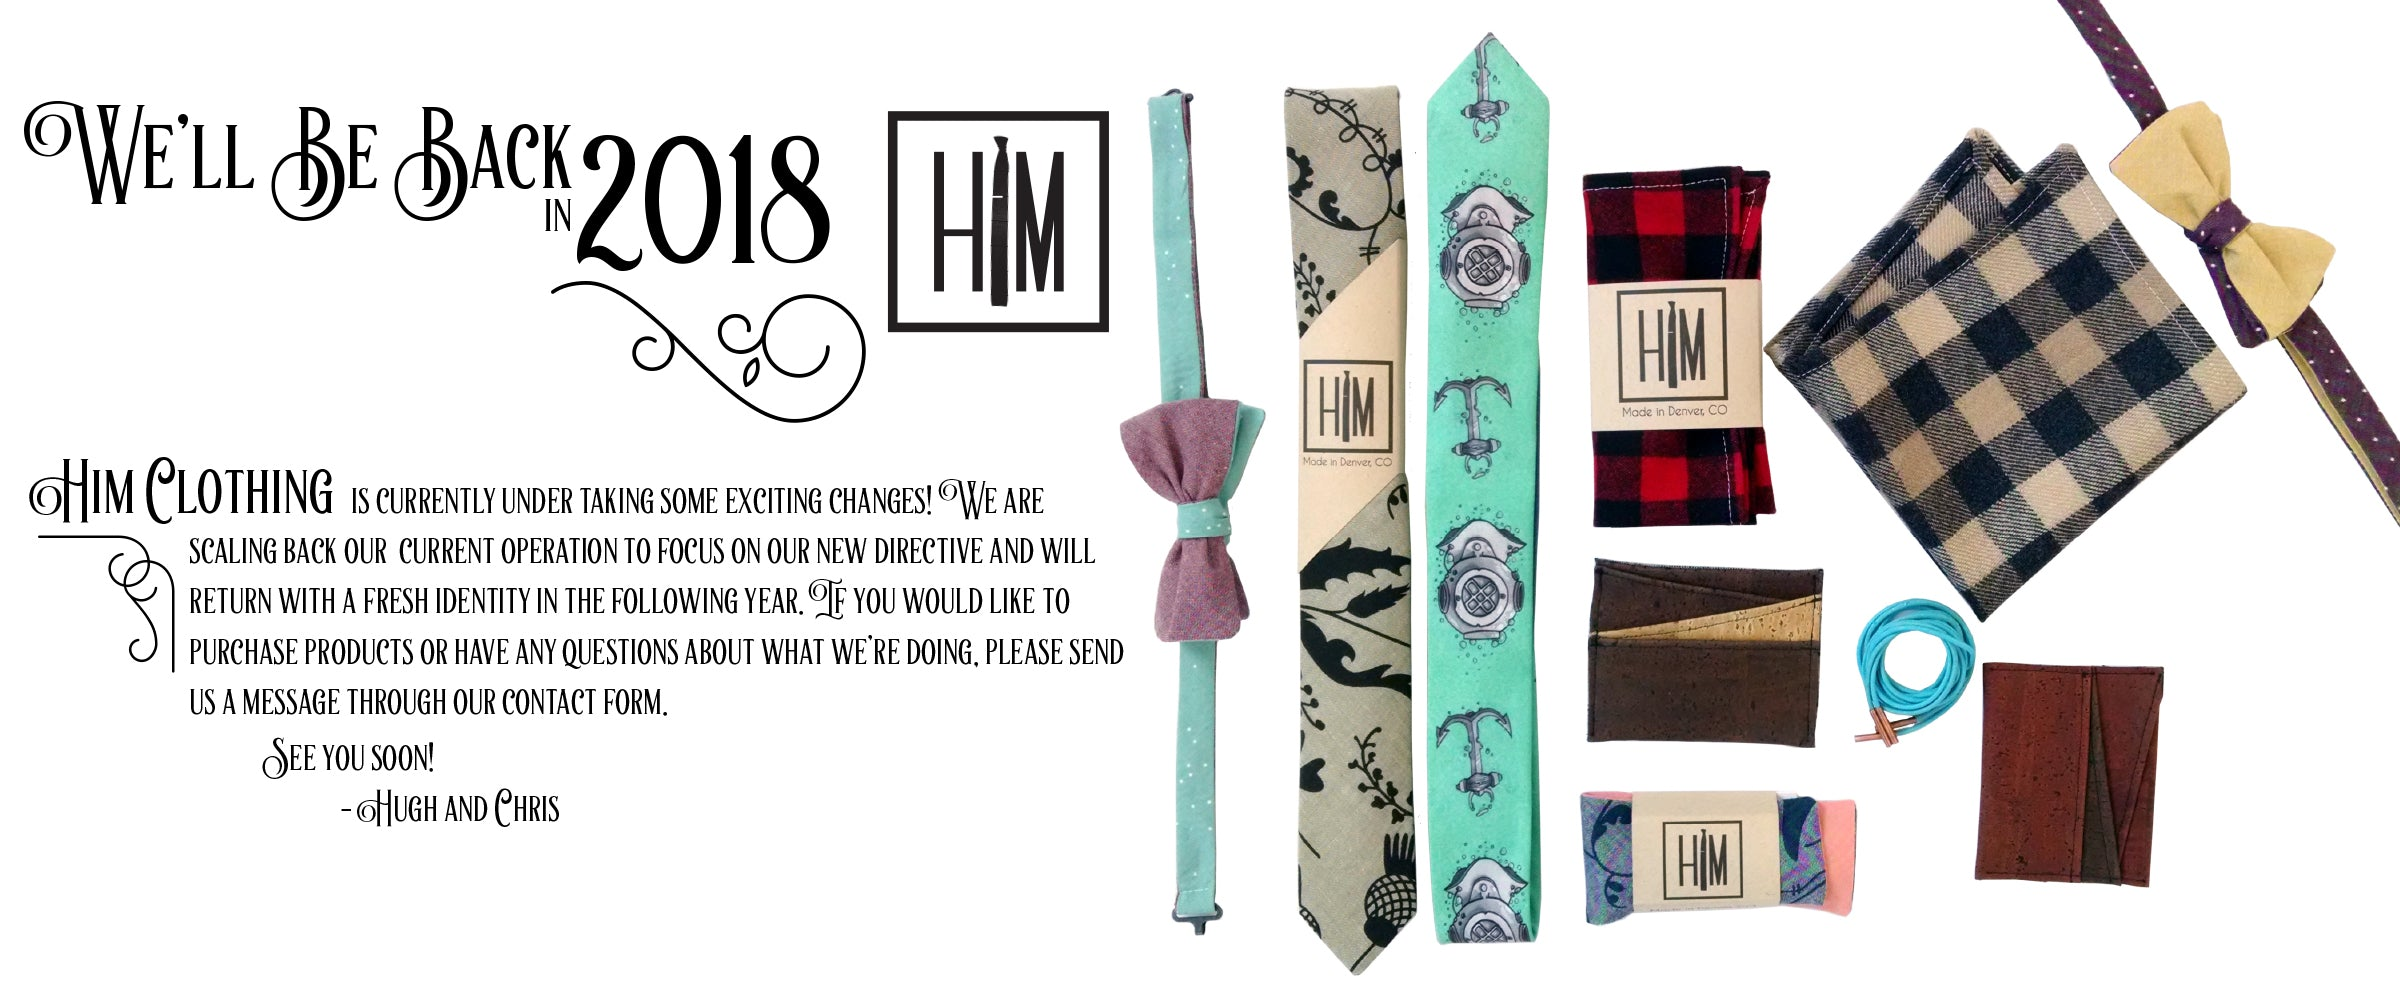 HIM Clothing Handmade Neckties Bow Ties Pocket Squares Tie Bars Lapel Flowers Shoelaces Local Denver Colorado Custom Wedding Groomsmen Gifts Mens Clothing Vintage Inspired Classically Constructed